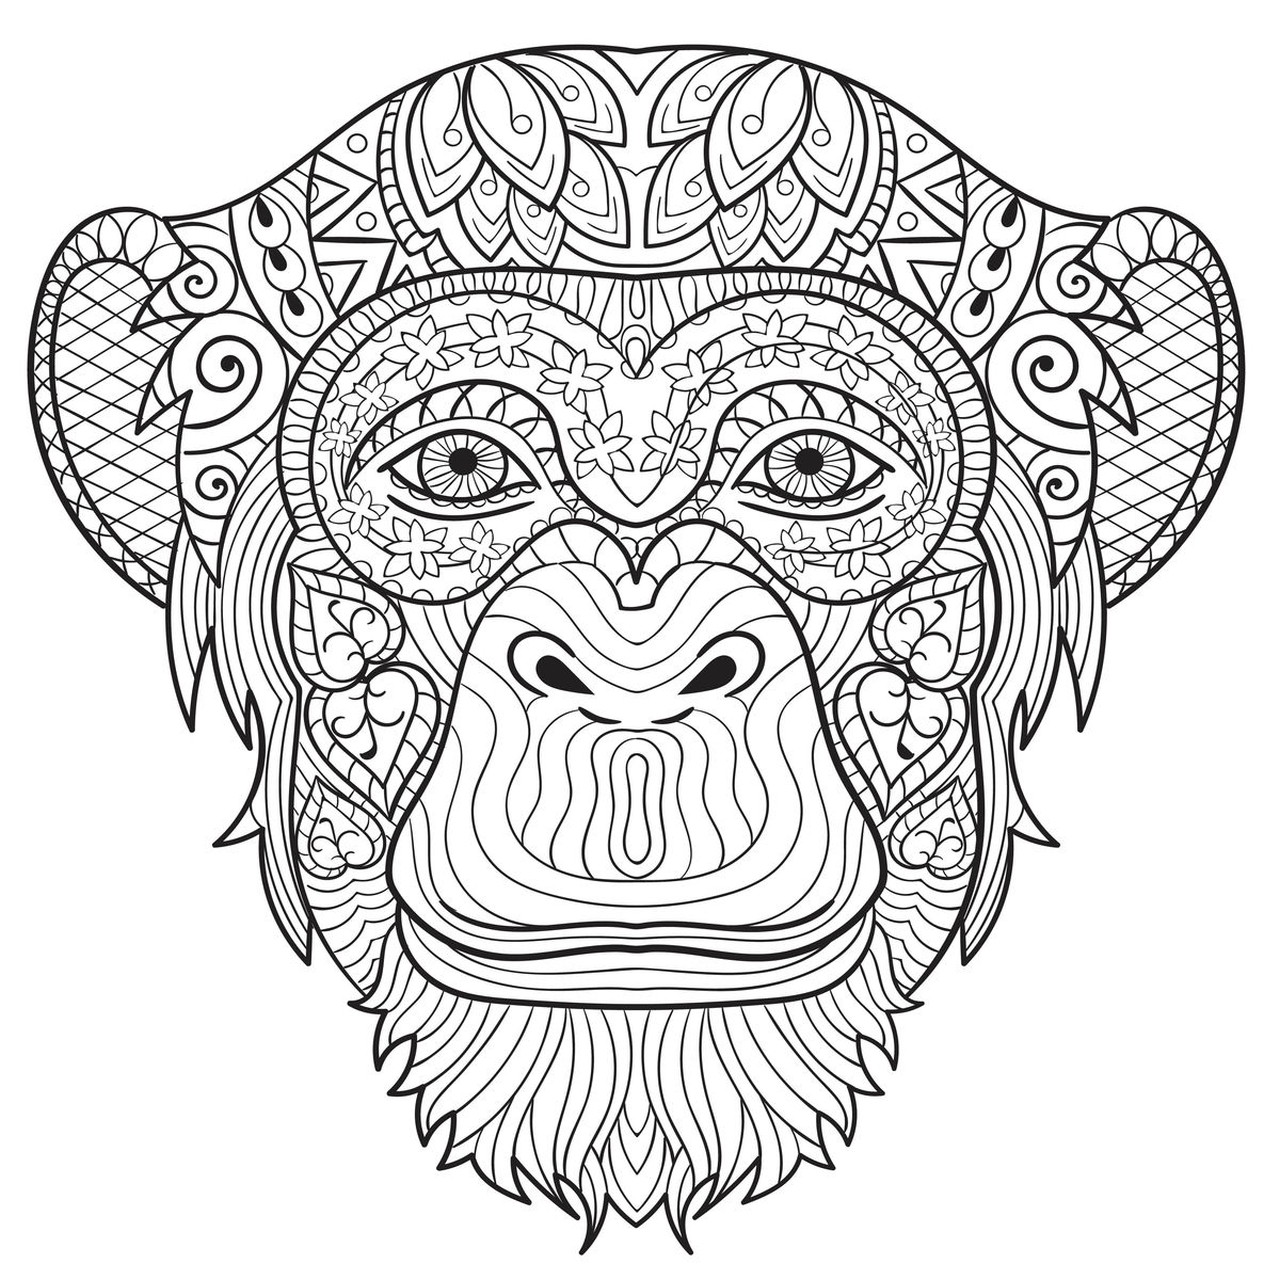 Get This Monkey Coloring Pages for Adults - 31902 !